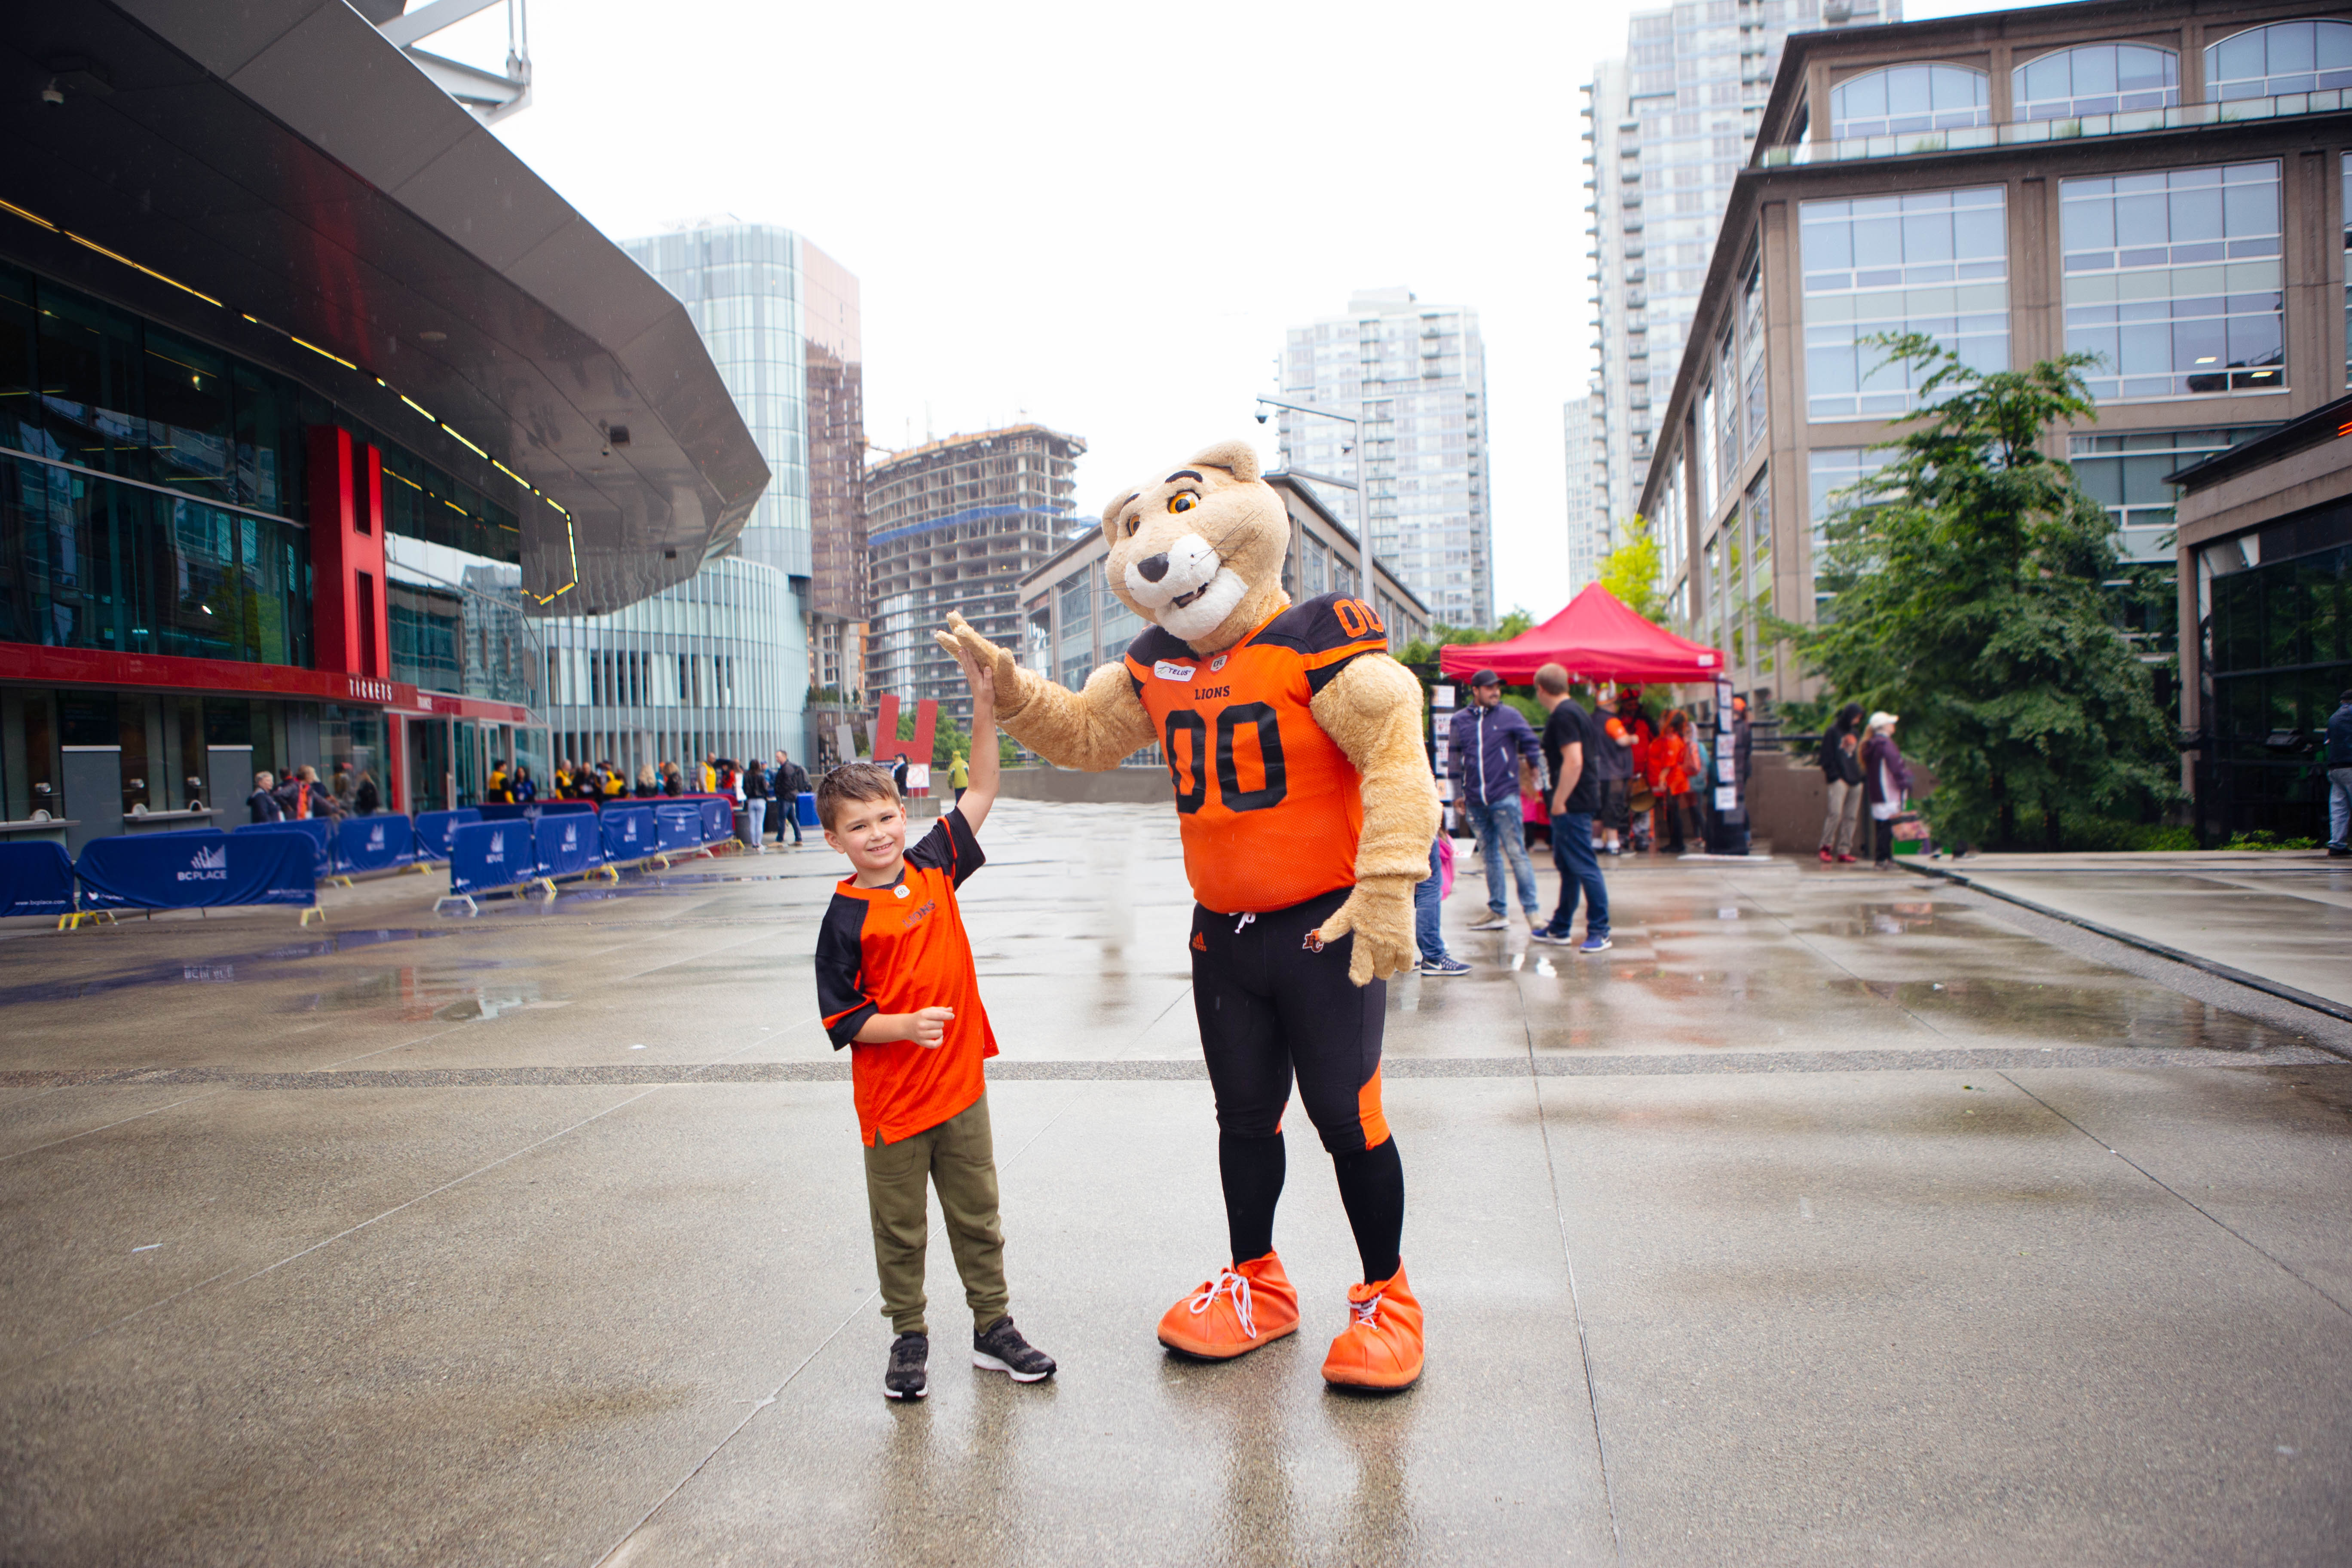 Fathers Day Gift Ideas | BC Lions Football